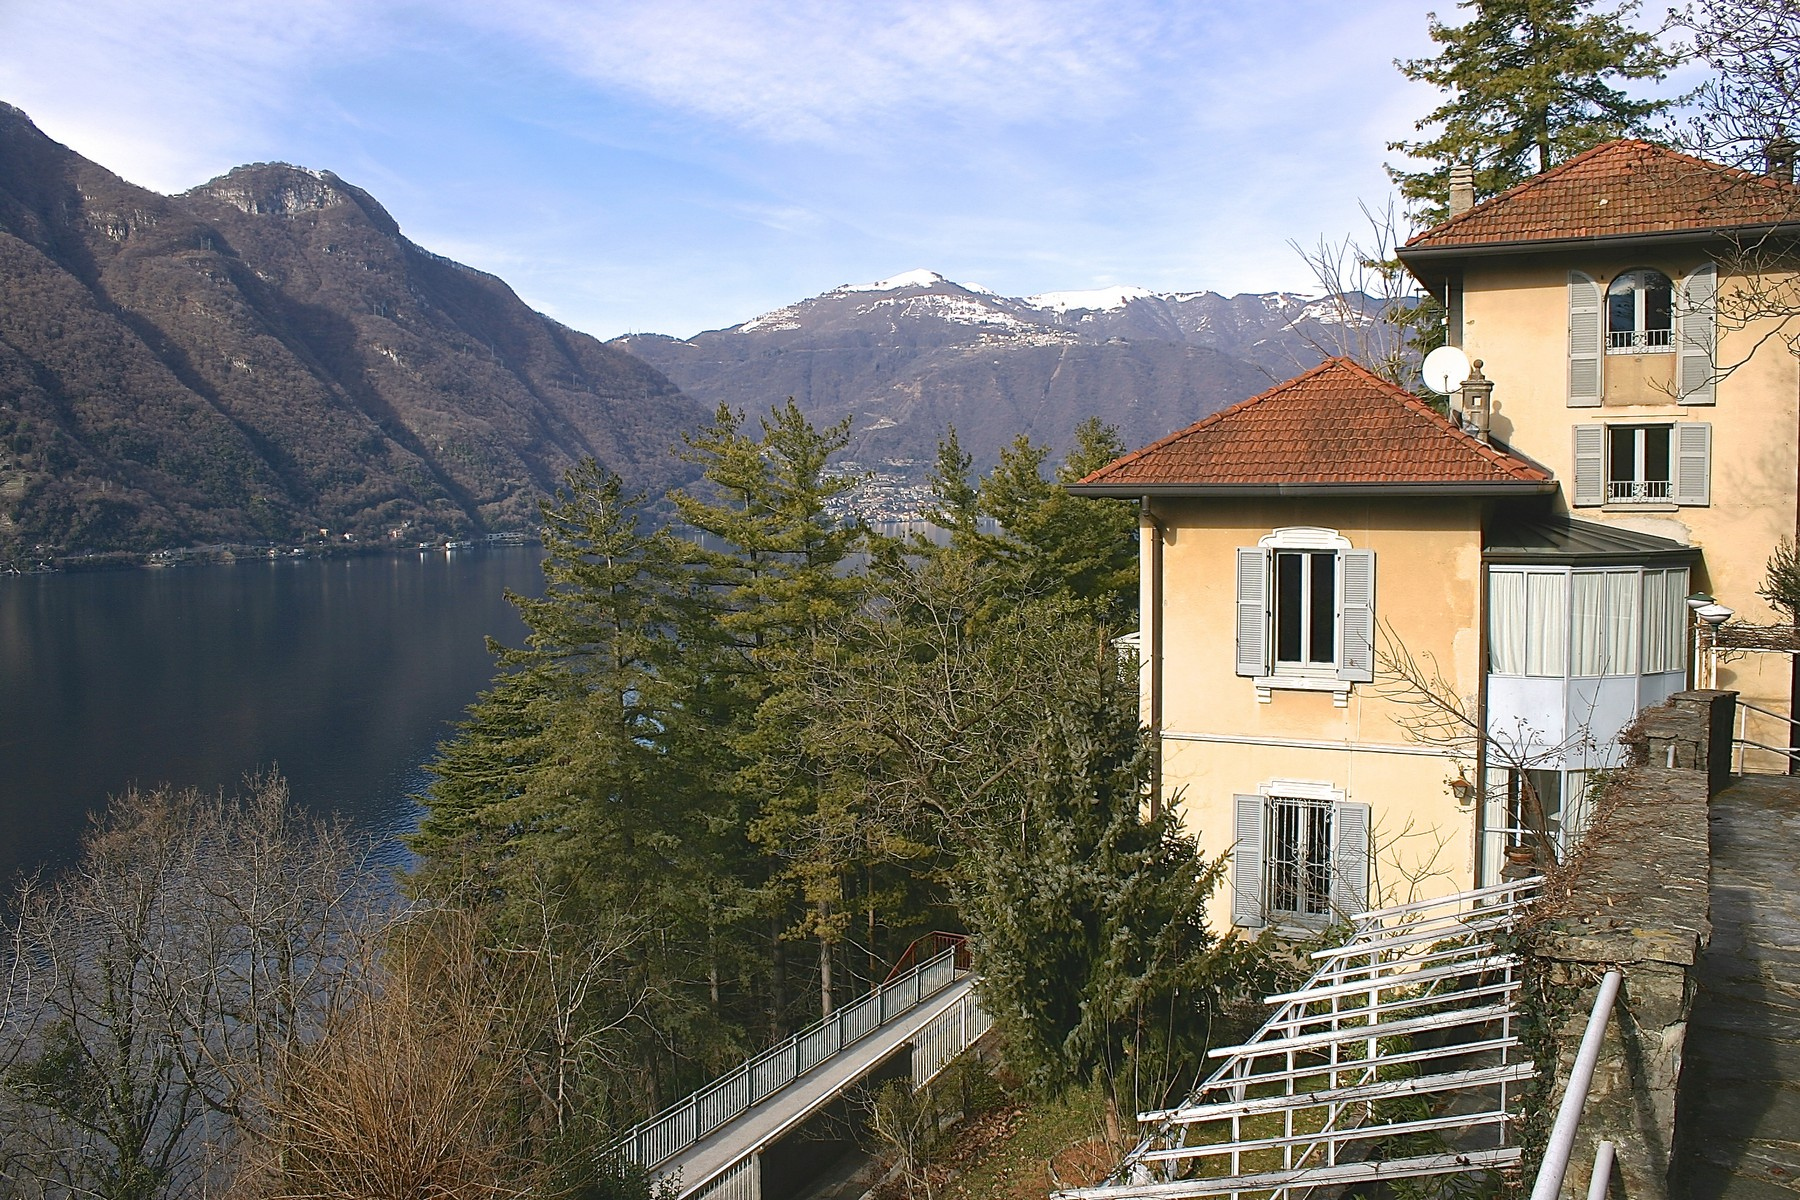 Property for Sale at Elegant period villa with splendid lakeviews Nesso, Como Italy